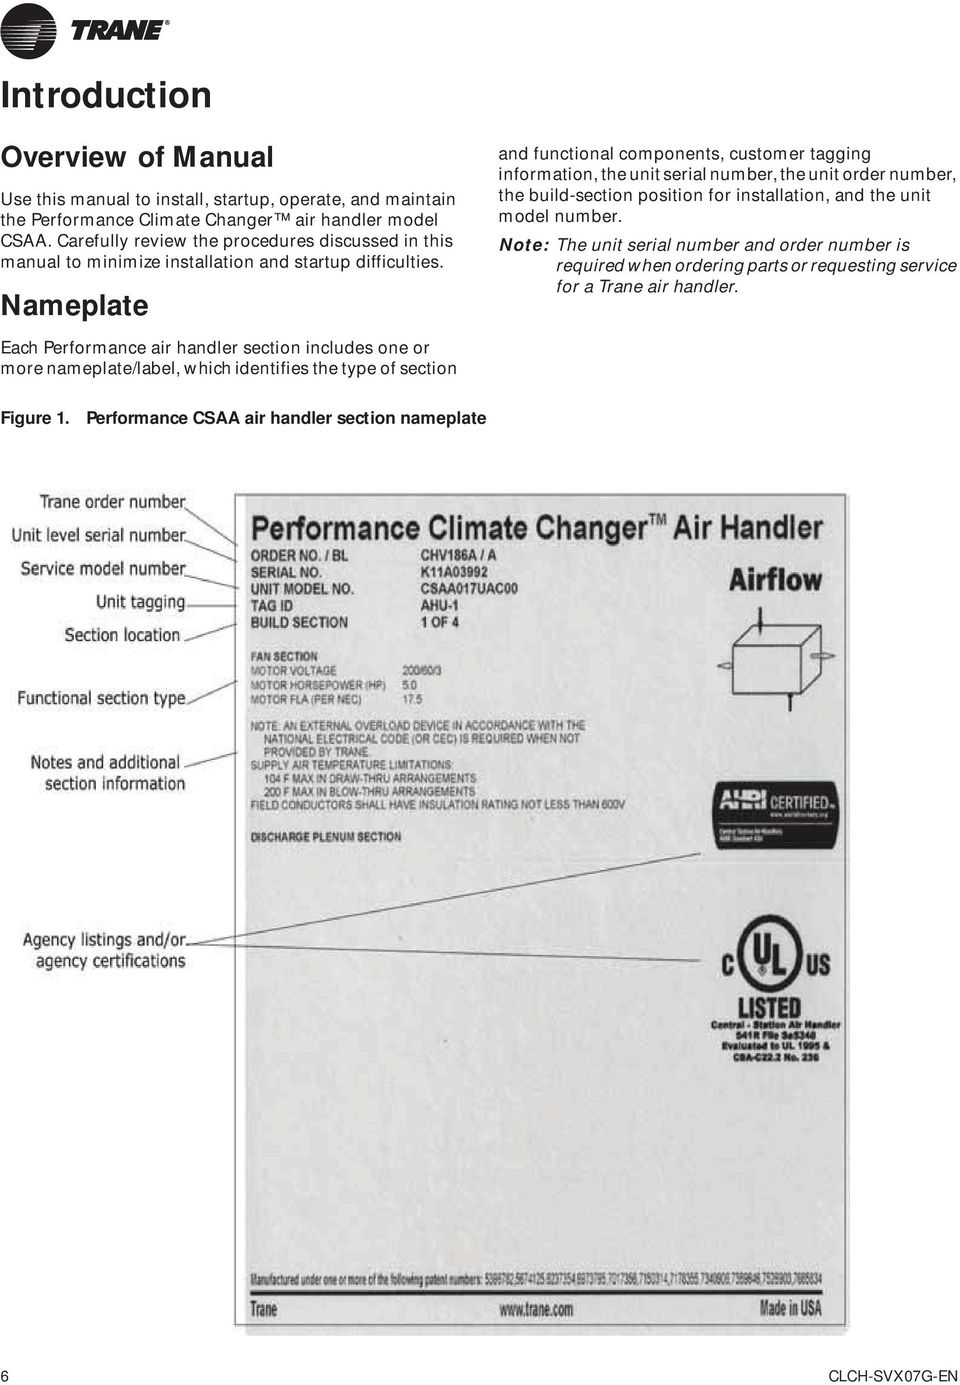 Trane Performance Climate Changer Installation Manual